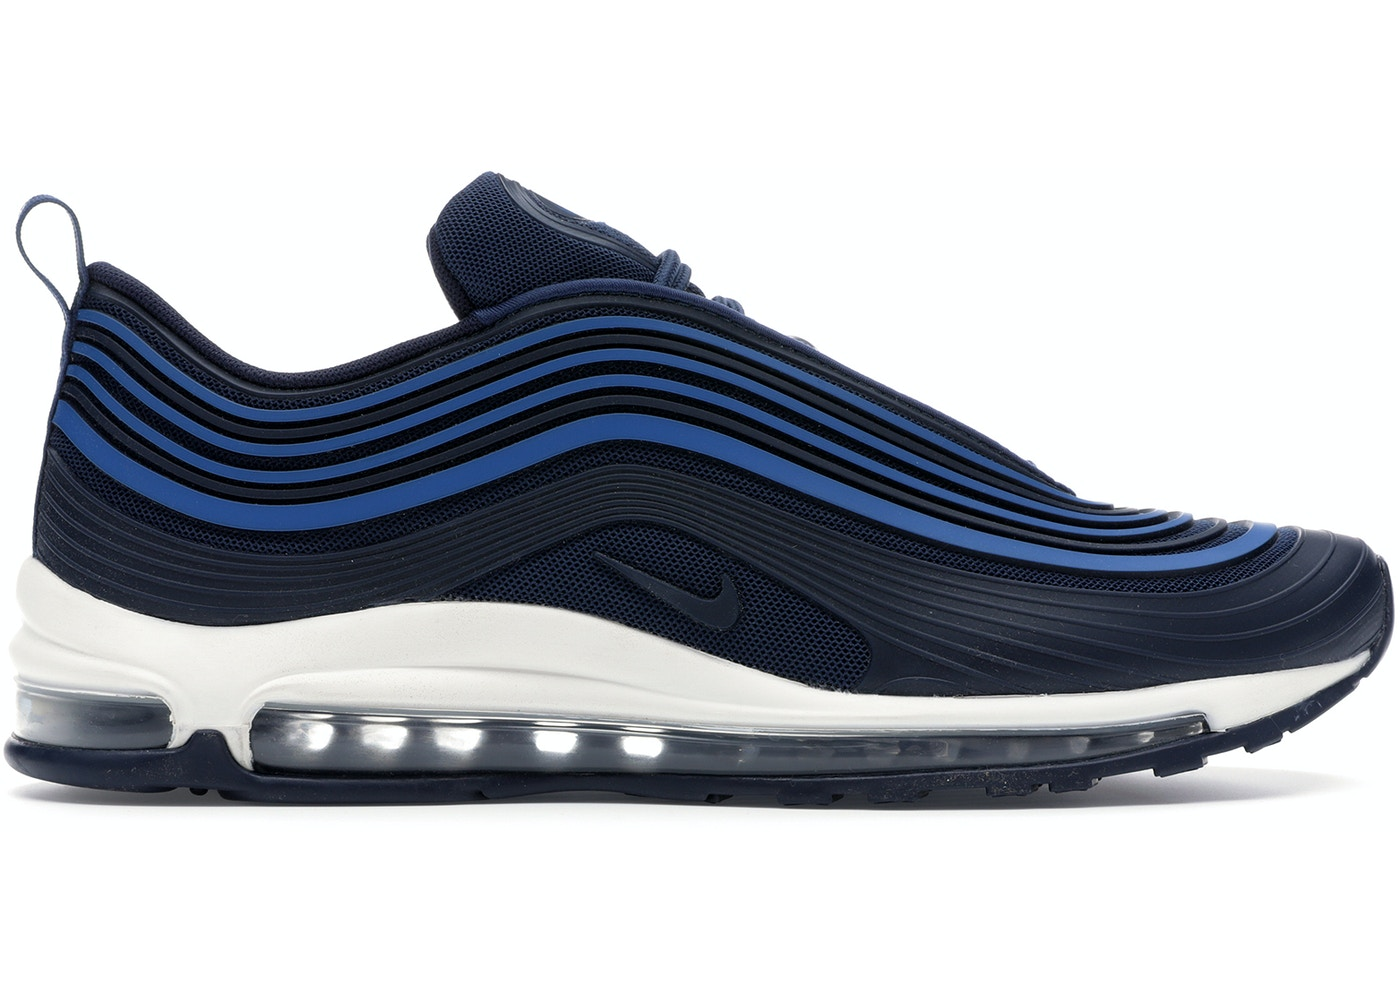 pretty nice 2fbf5 75c97 Air Max 97 Ultra 17 Navy Obsidian - AH7581-400